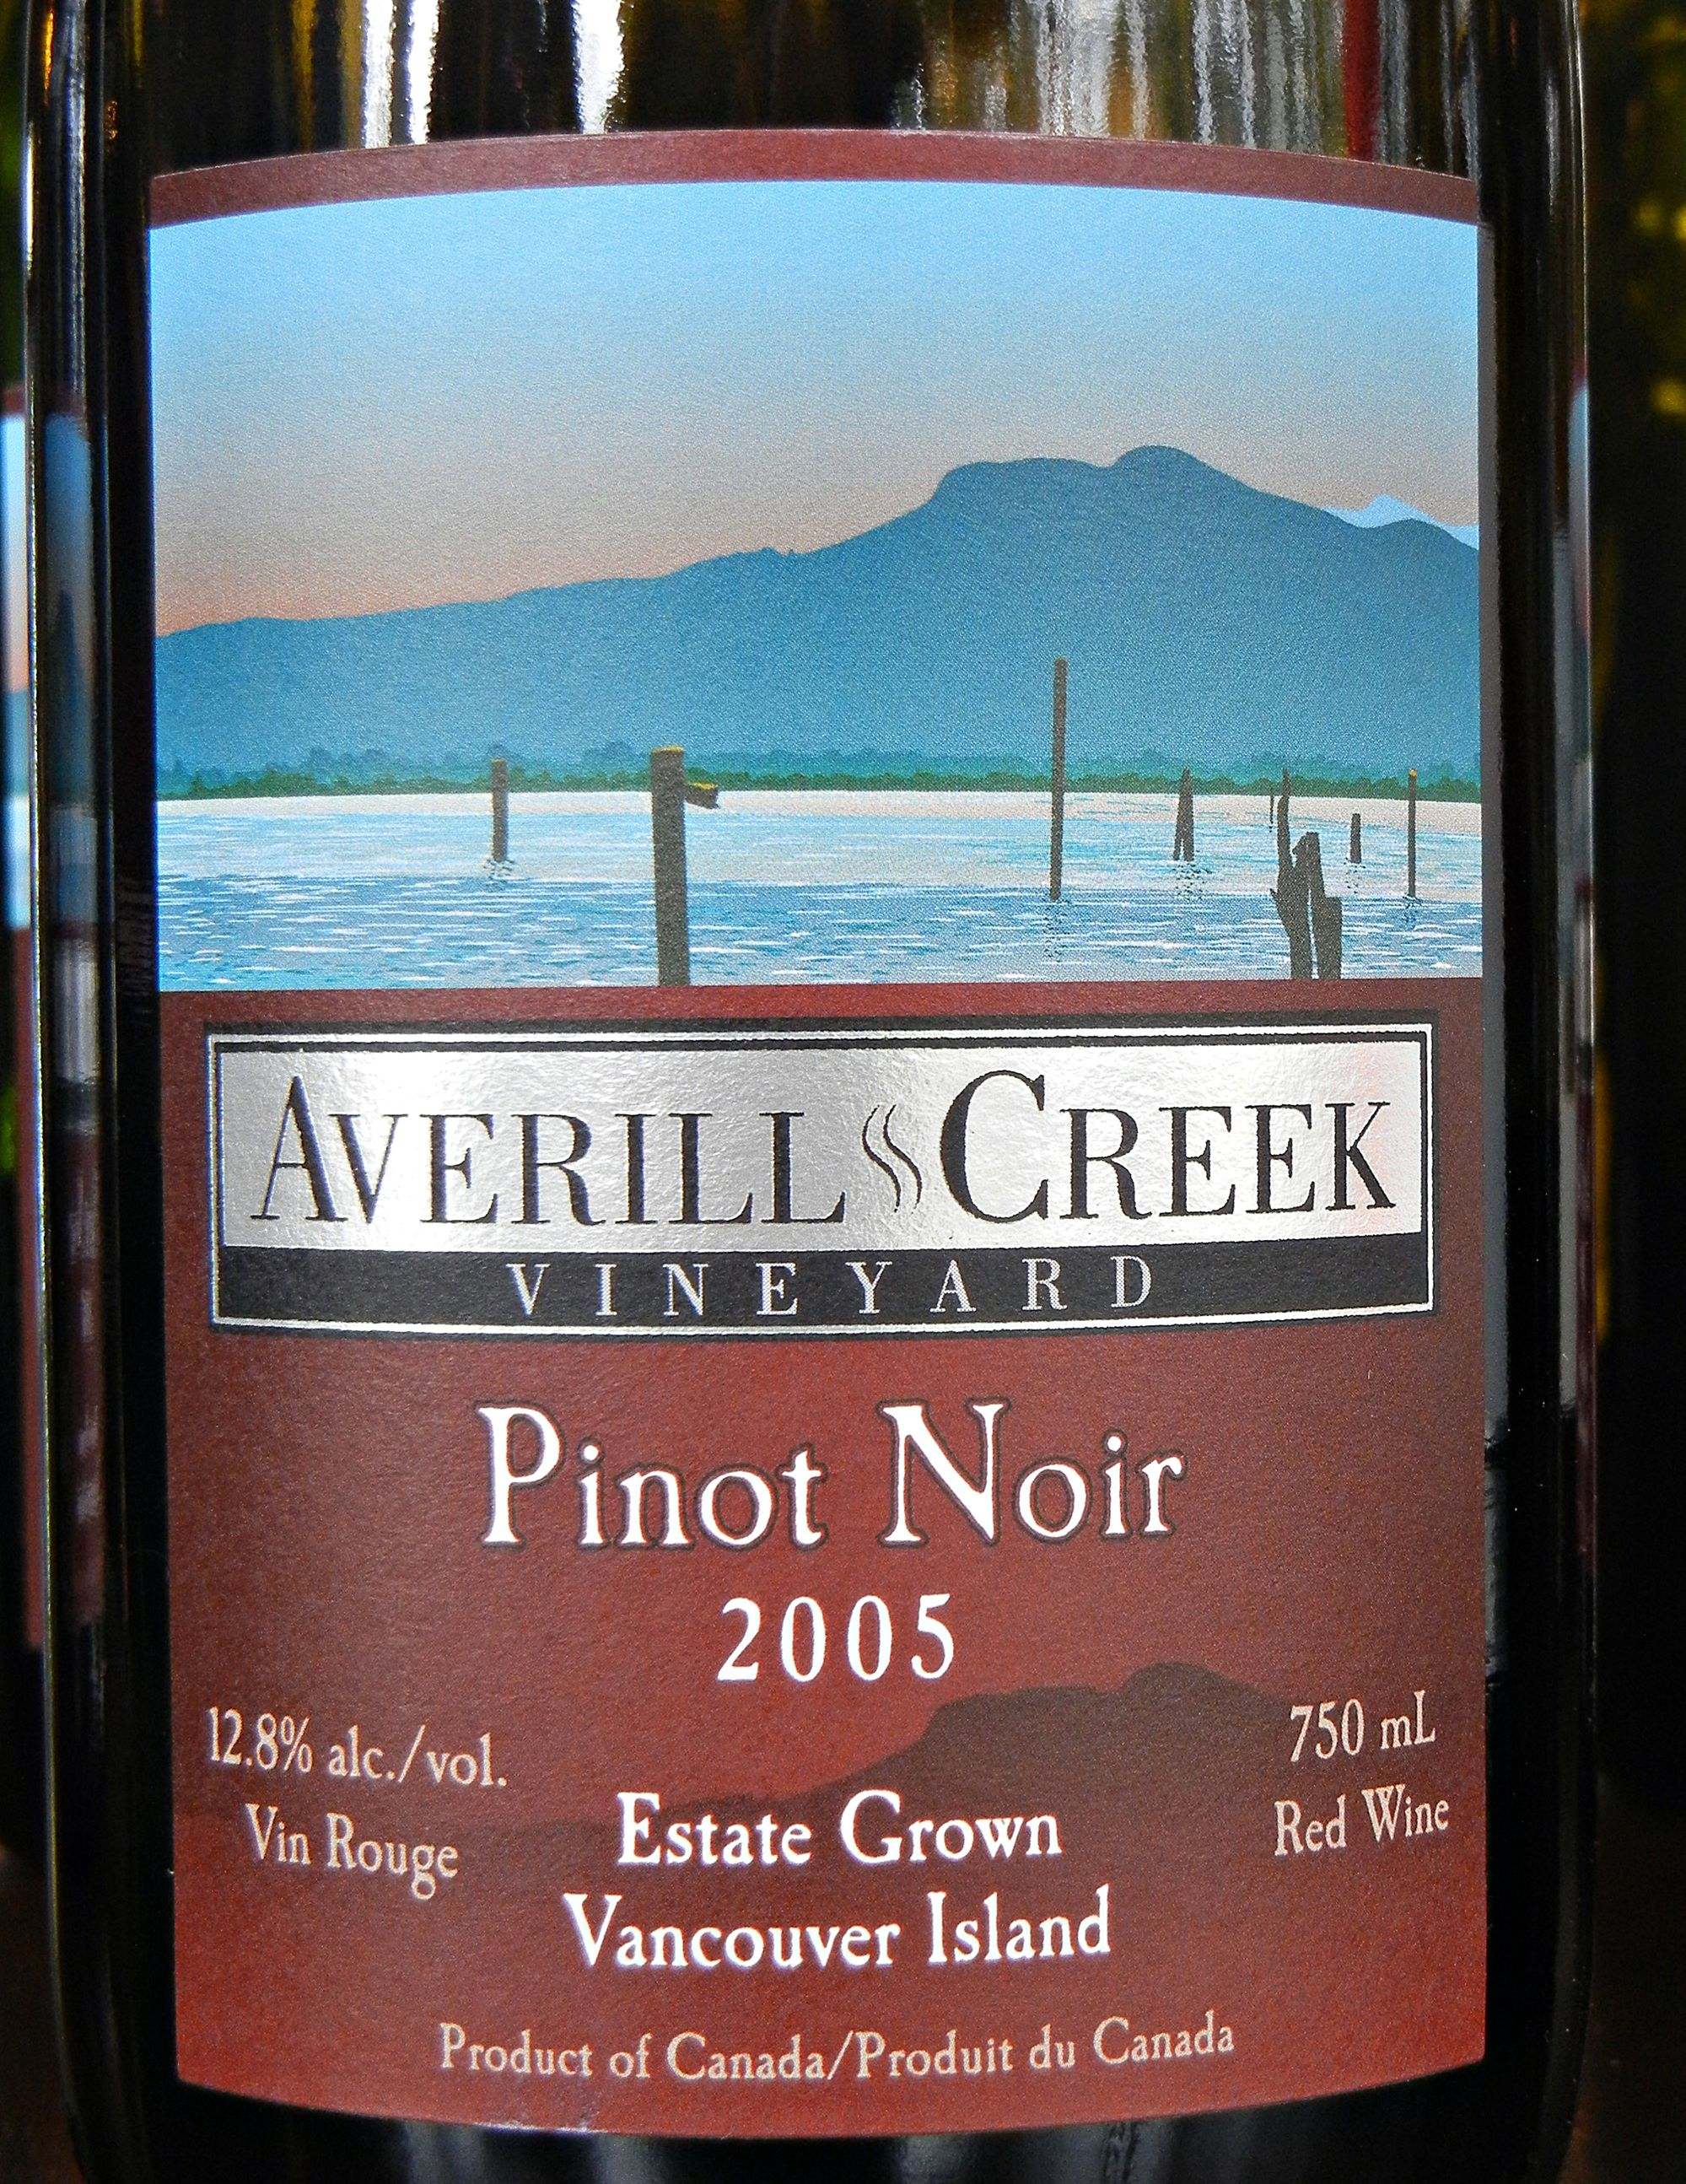 Averill Creek Pinot Noir 2005 Label - BC Pinot Noir Tasting Review 24